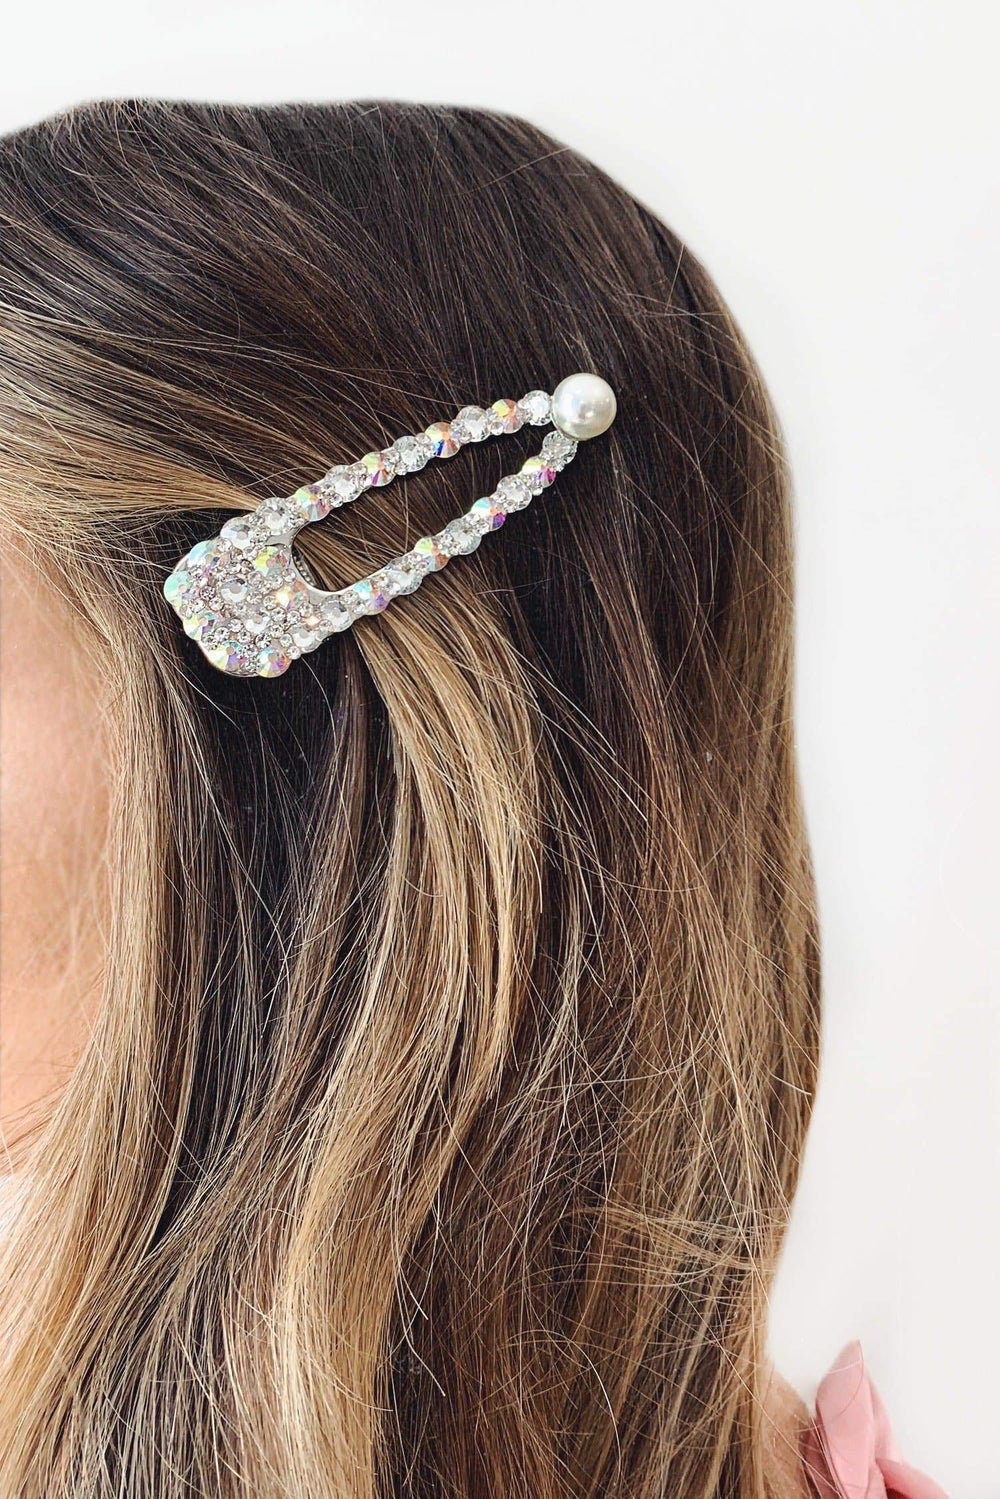 Iridescent Crystal Stone Large Hair Clip with Pearl Detailing